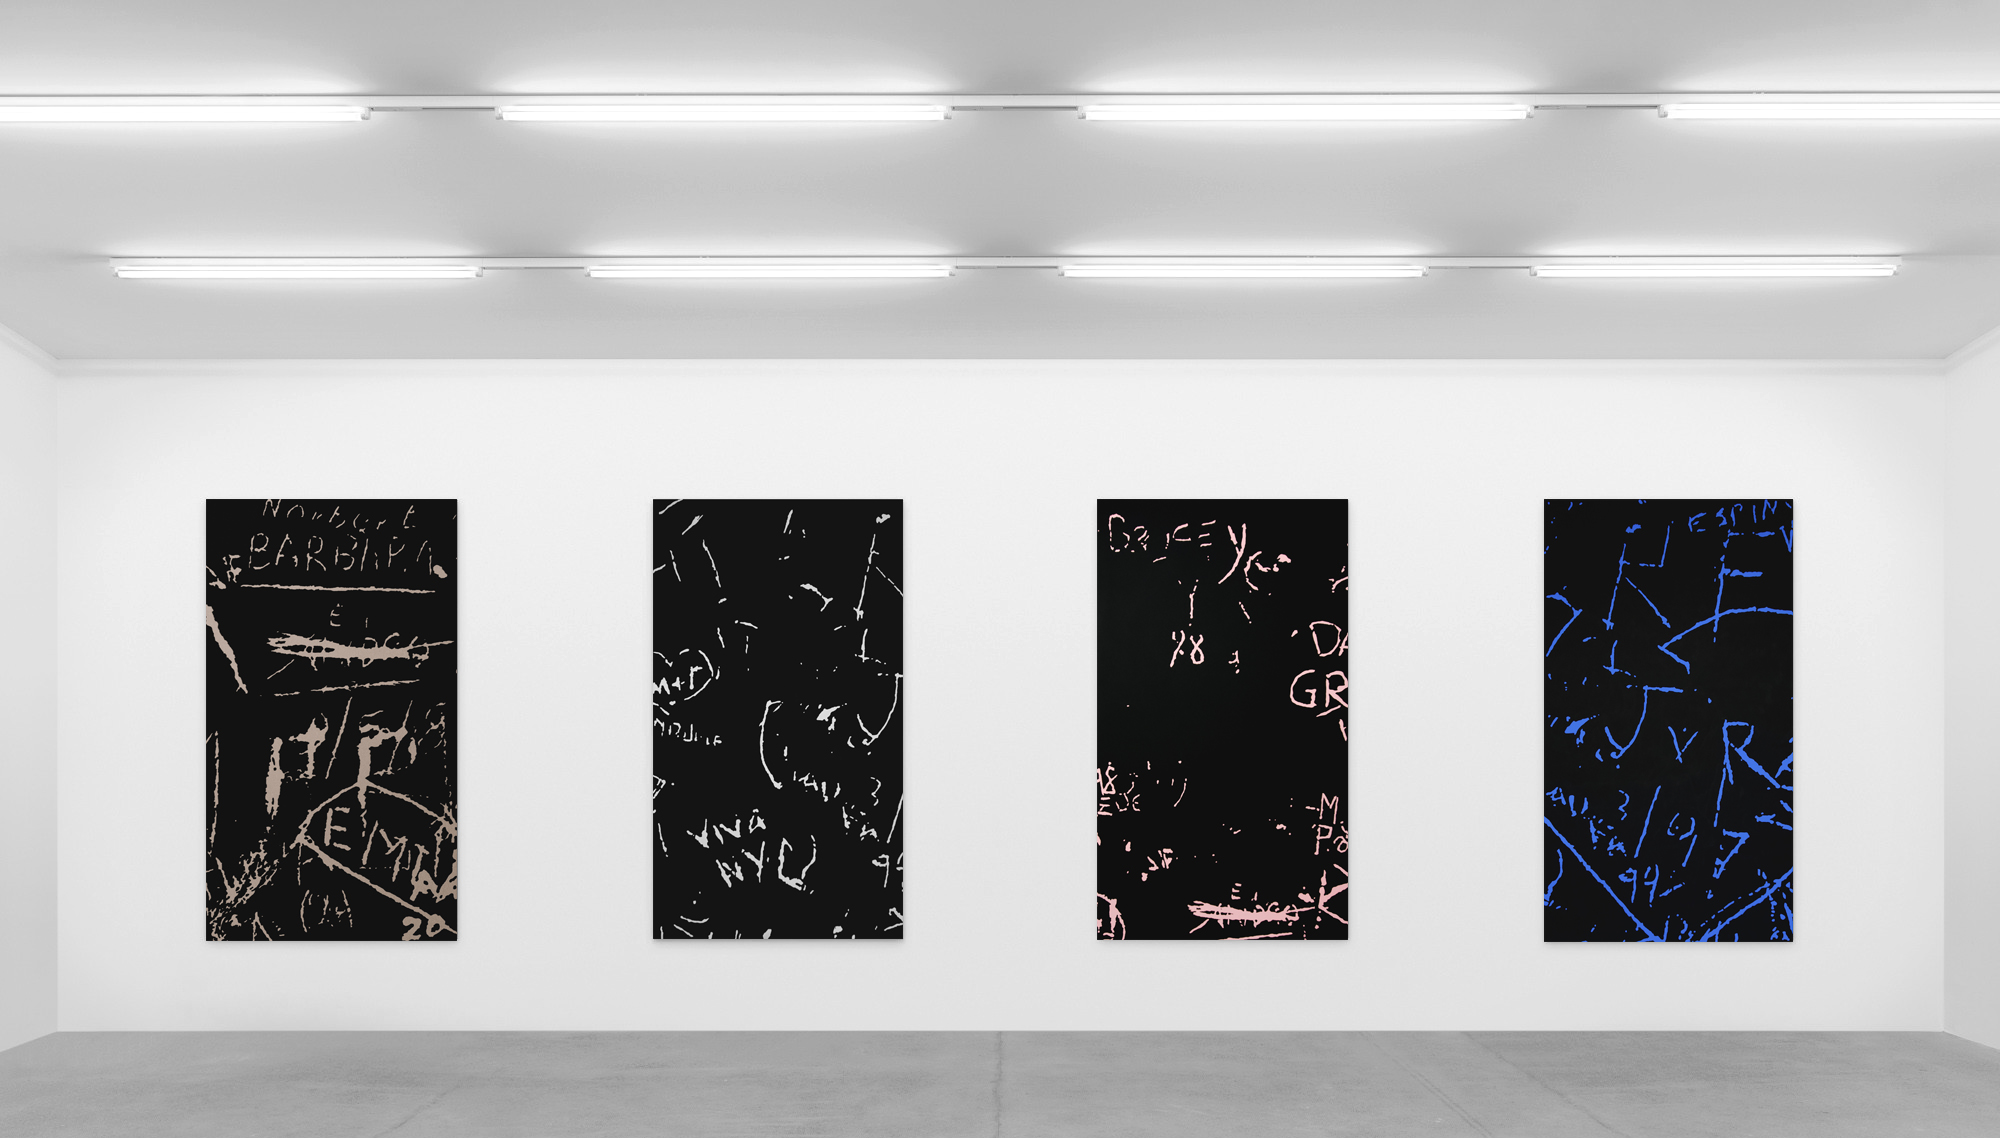 Installation view  Carving Paintings , exhibited at Saatchi Gallery, London United Kingdom, 2018 Kristin Hjellegjerde Gallery, London, United Kingdom, 2018 Eduardo Secci Contemporary, Florence, Italy, 2018